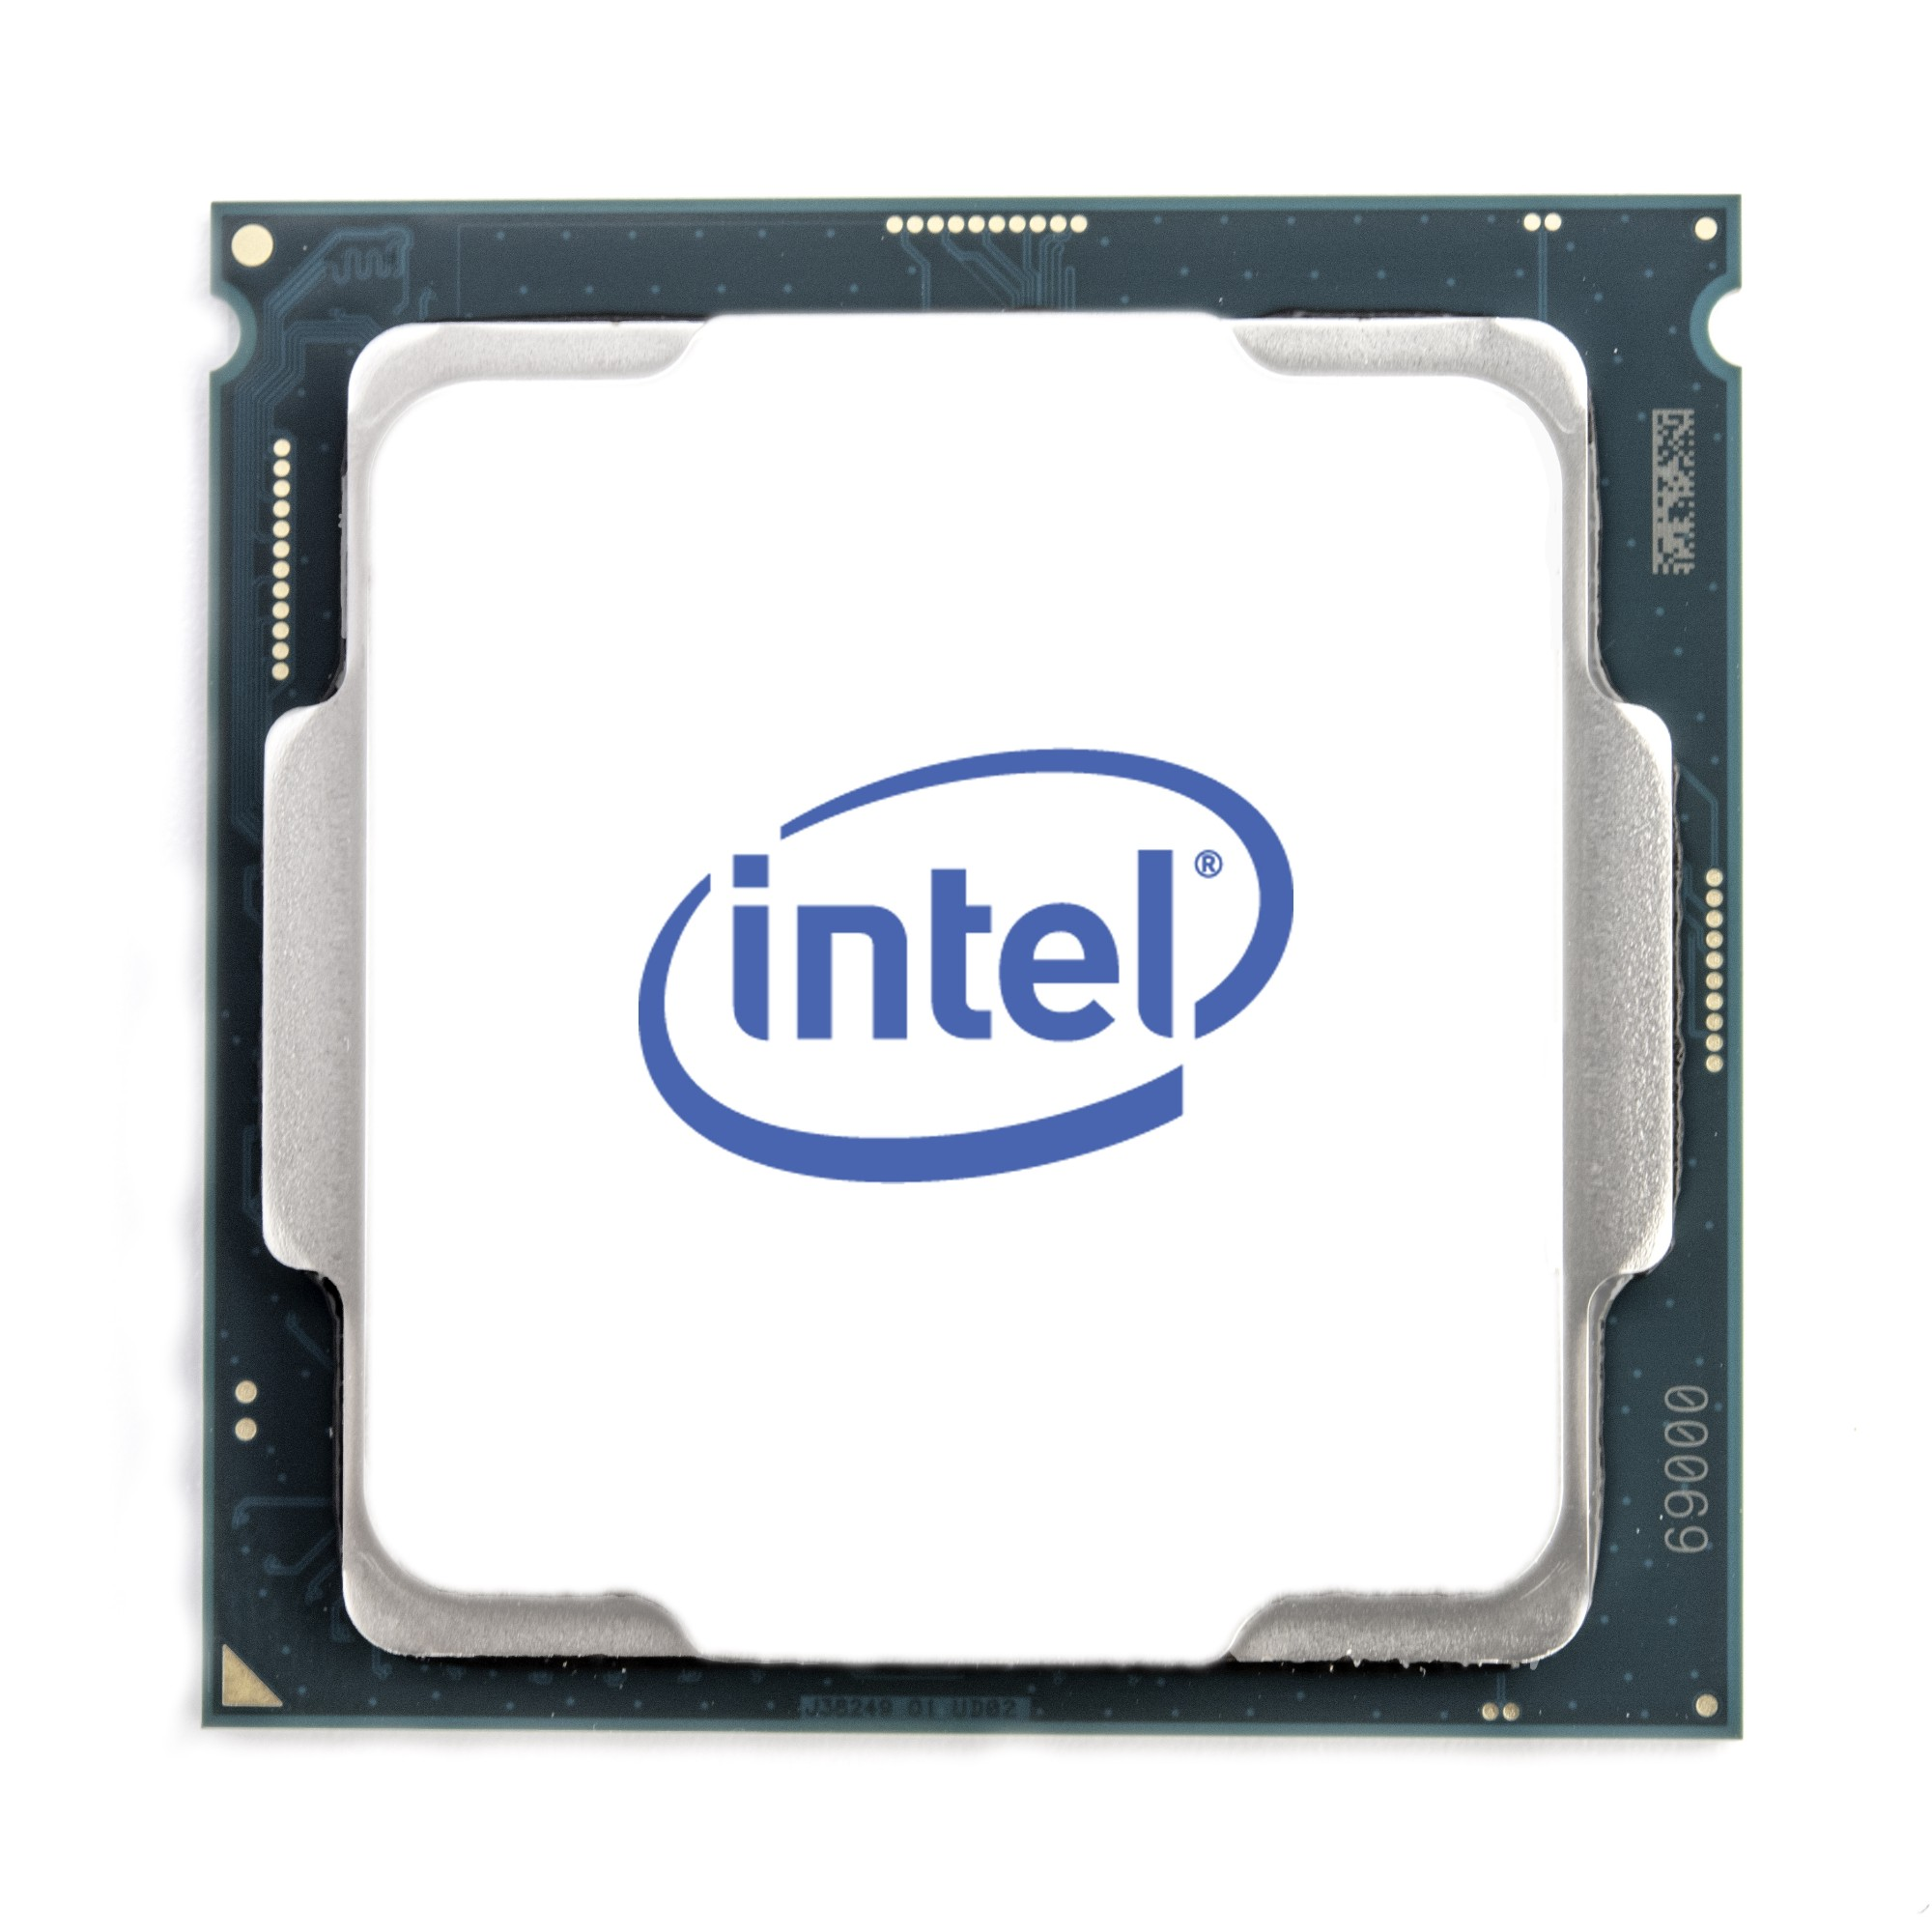 Intel Core i5-10600 processor 3.3 GHz 12 MB Smart Cache